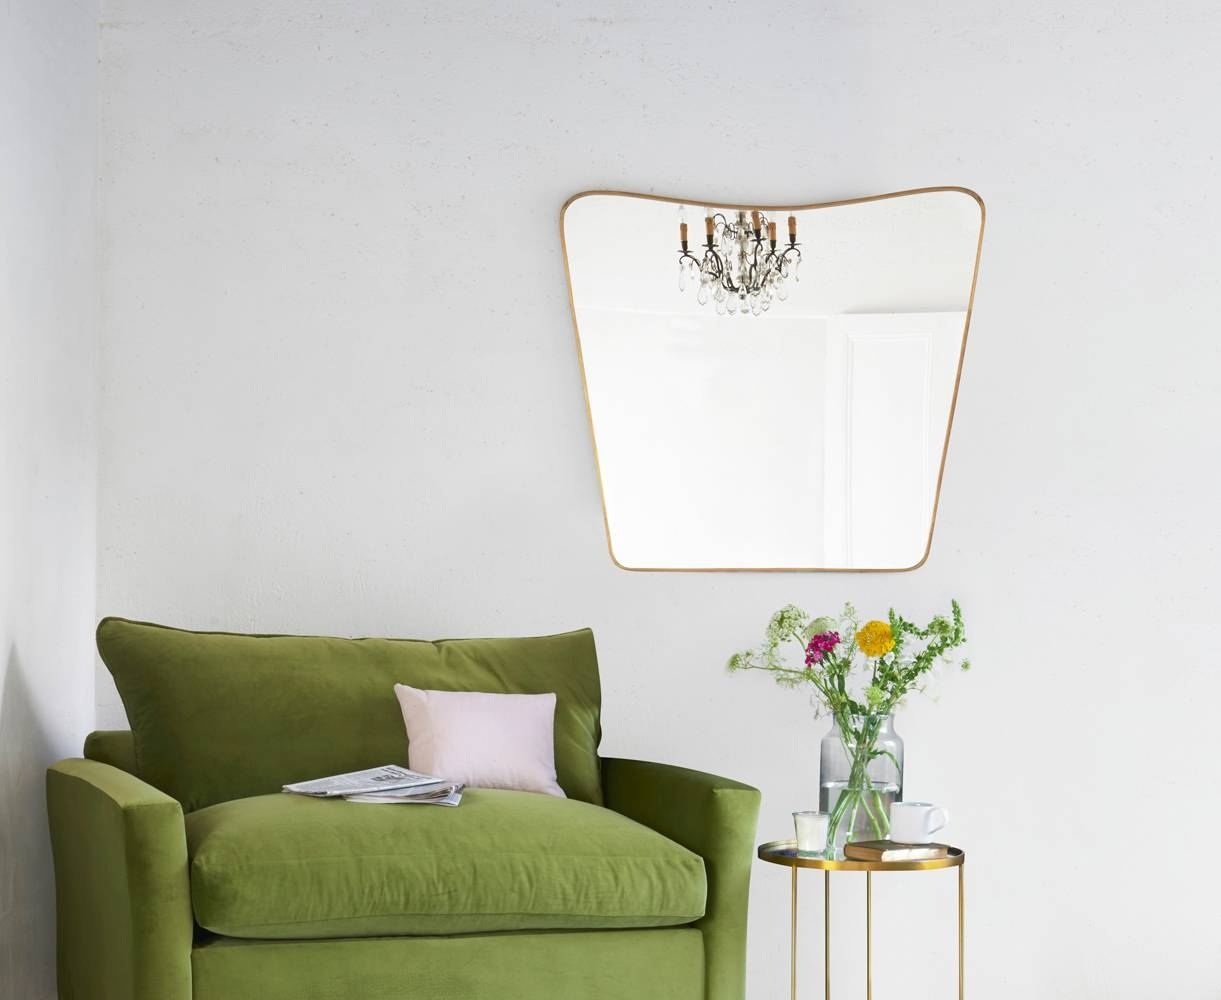 Big Brass Mirror | Retro Wall Mirror | Loaf | Loaf with regard to Retro Wall Mirrors (Image 12 of 25)